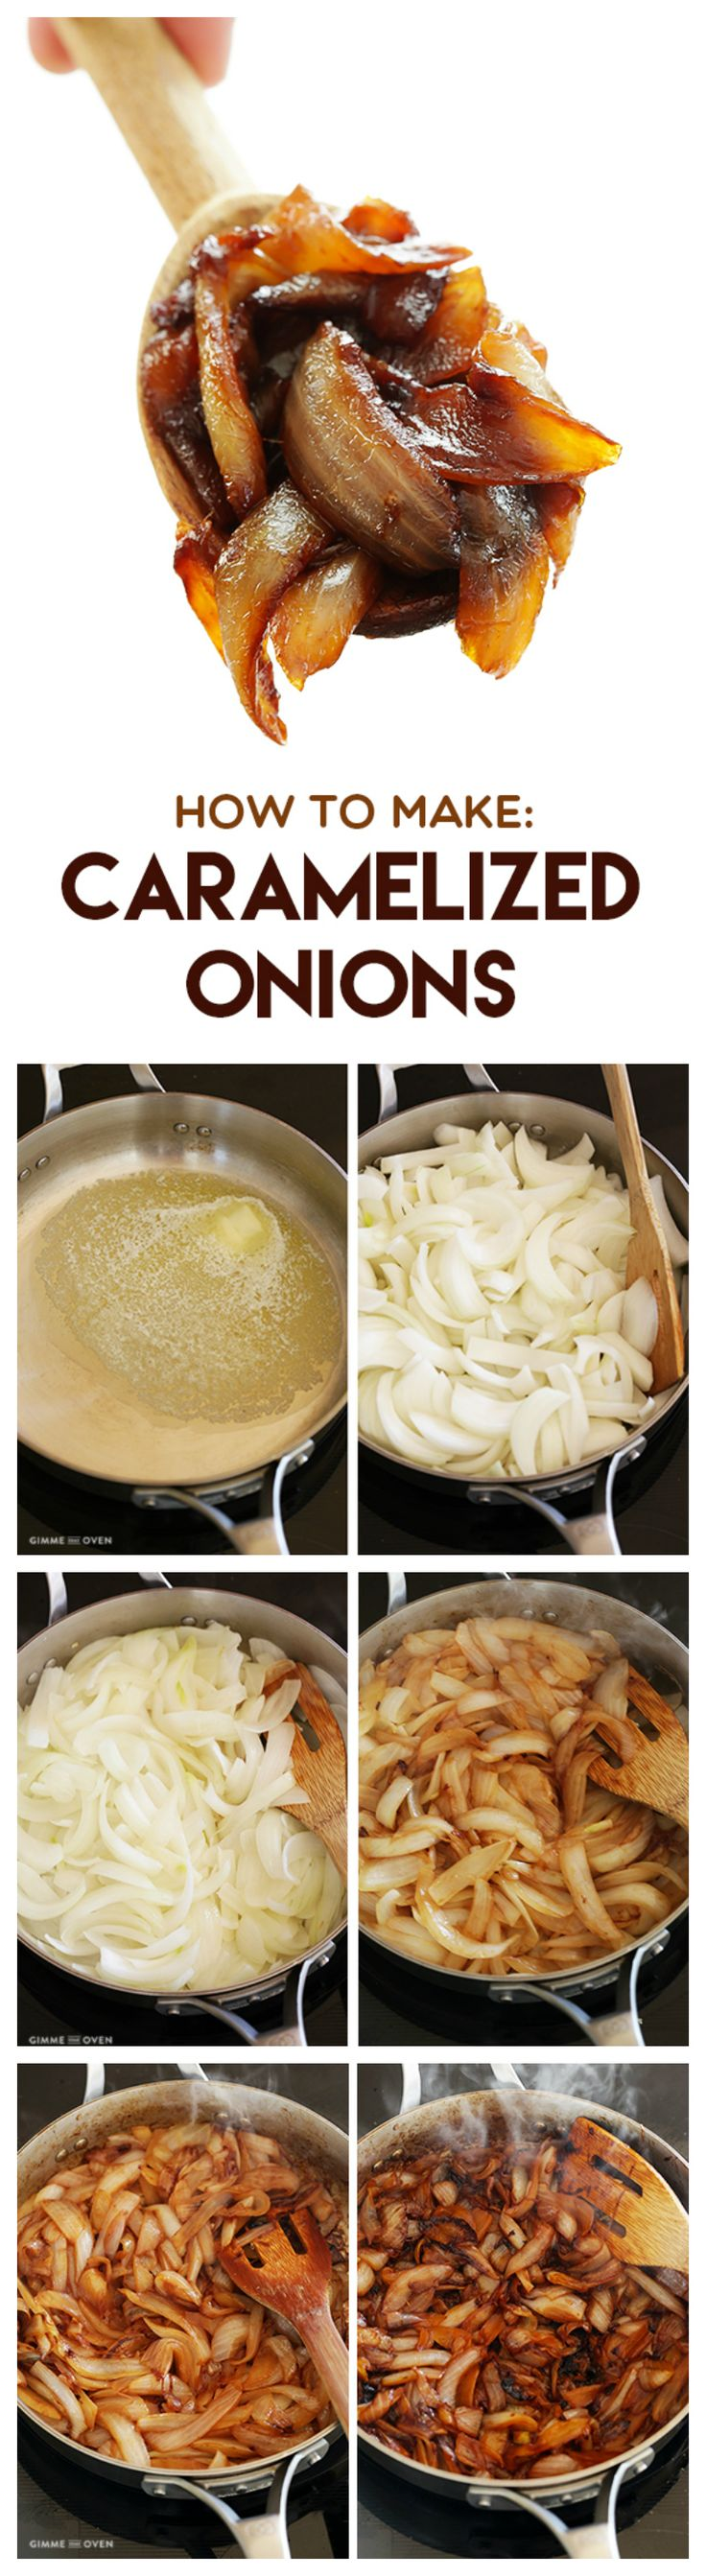 The way toY hubby's heart...  How To Make Caramelized Onions -- a step-by-step photo tutorial and recipe | https://gimmesomeoven.com